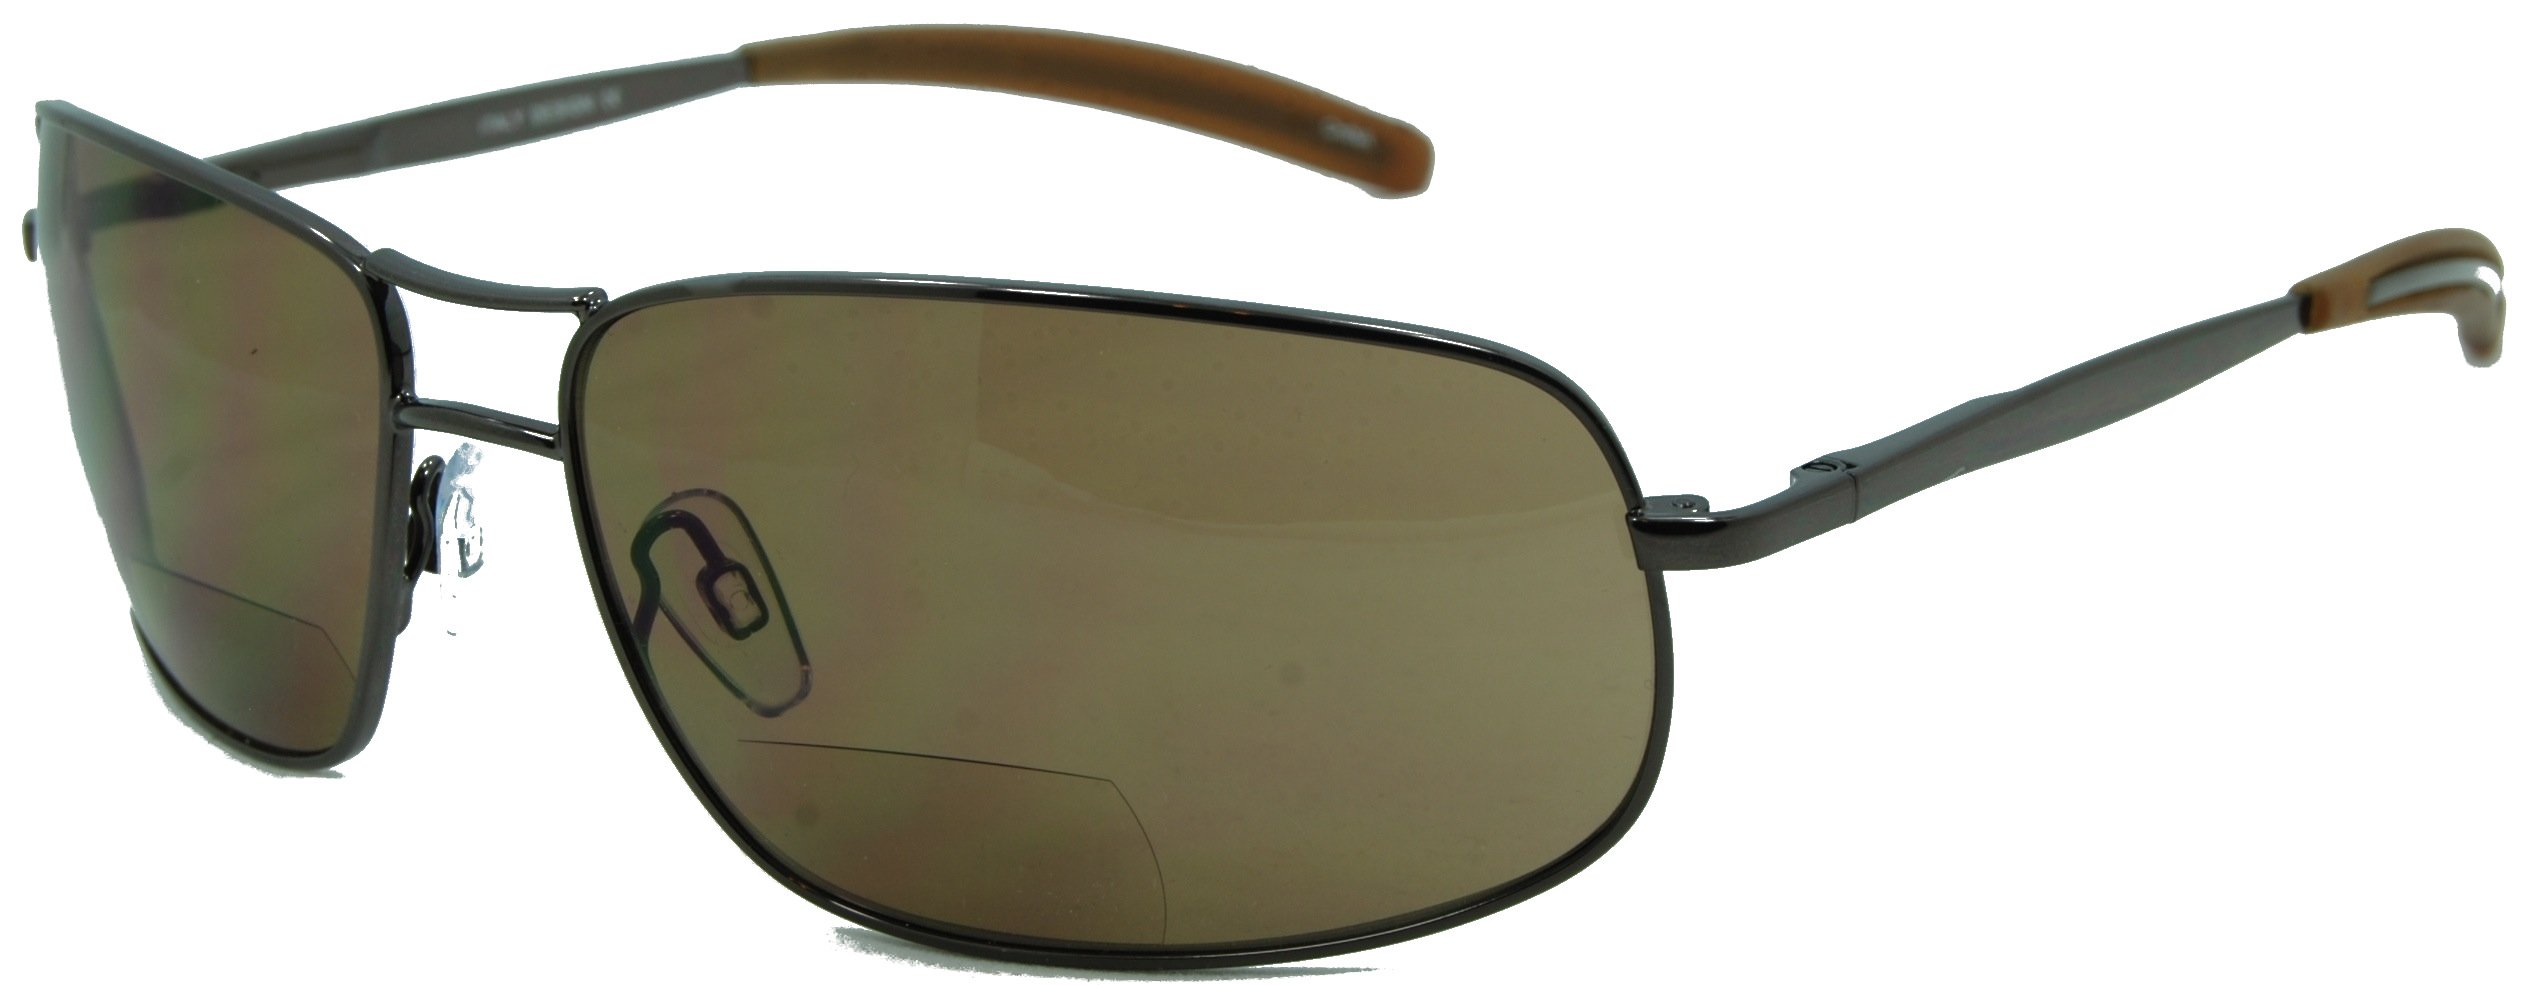 In Style Eyes Ace in the Hole, Nearly No Line Bifocals Sunglasses Work Perfectly for any Outdoor Activity/Brown 2.00 by In Style Eyes